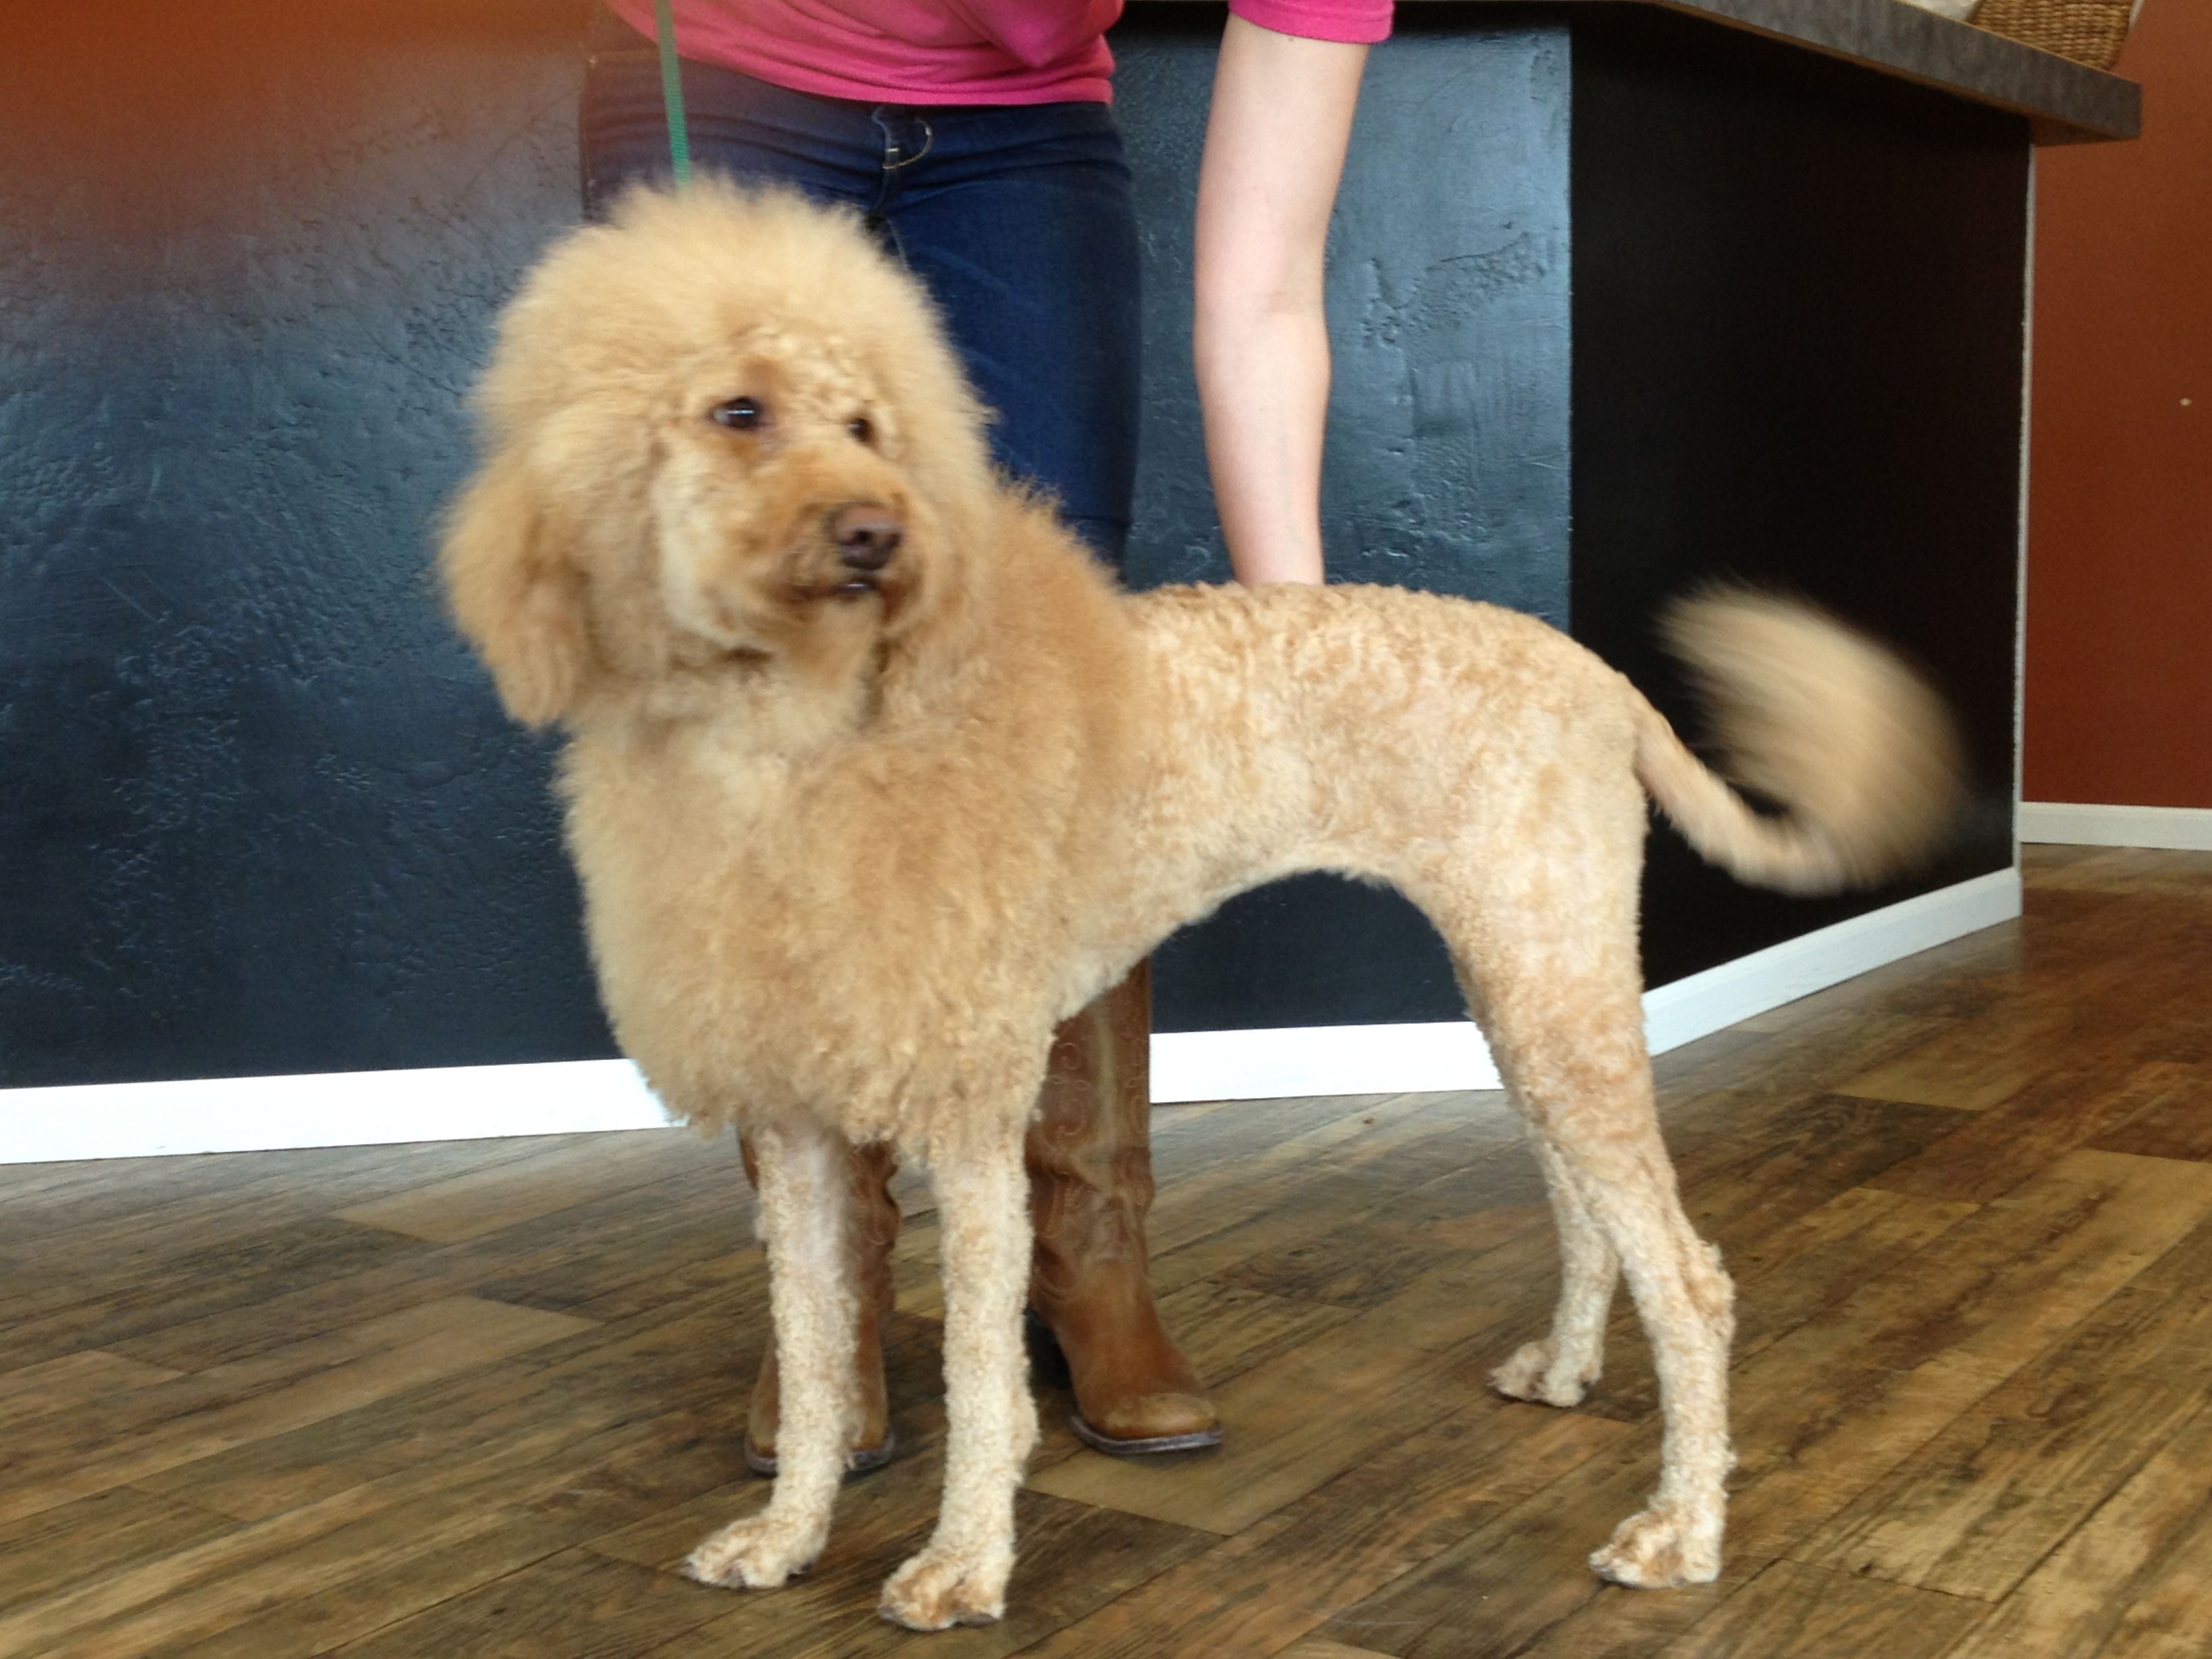 O Dog Hairstyle: The Lion Cut On A Goldendoodle